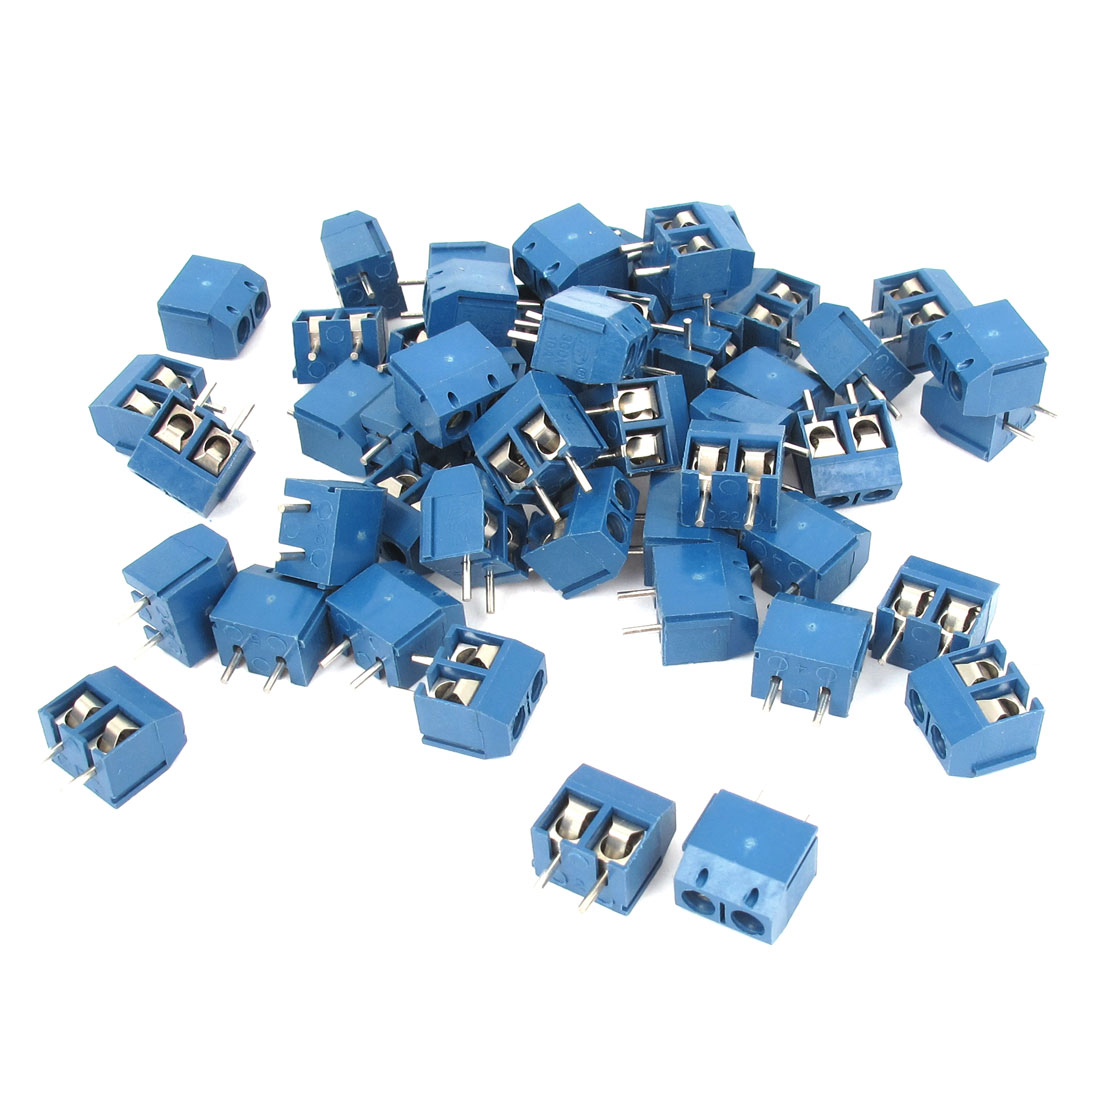 20 Pcs 5mm Pitch PCB Screw Terminal Block Connector 300V 10A